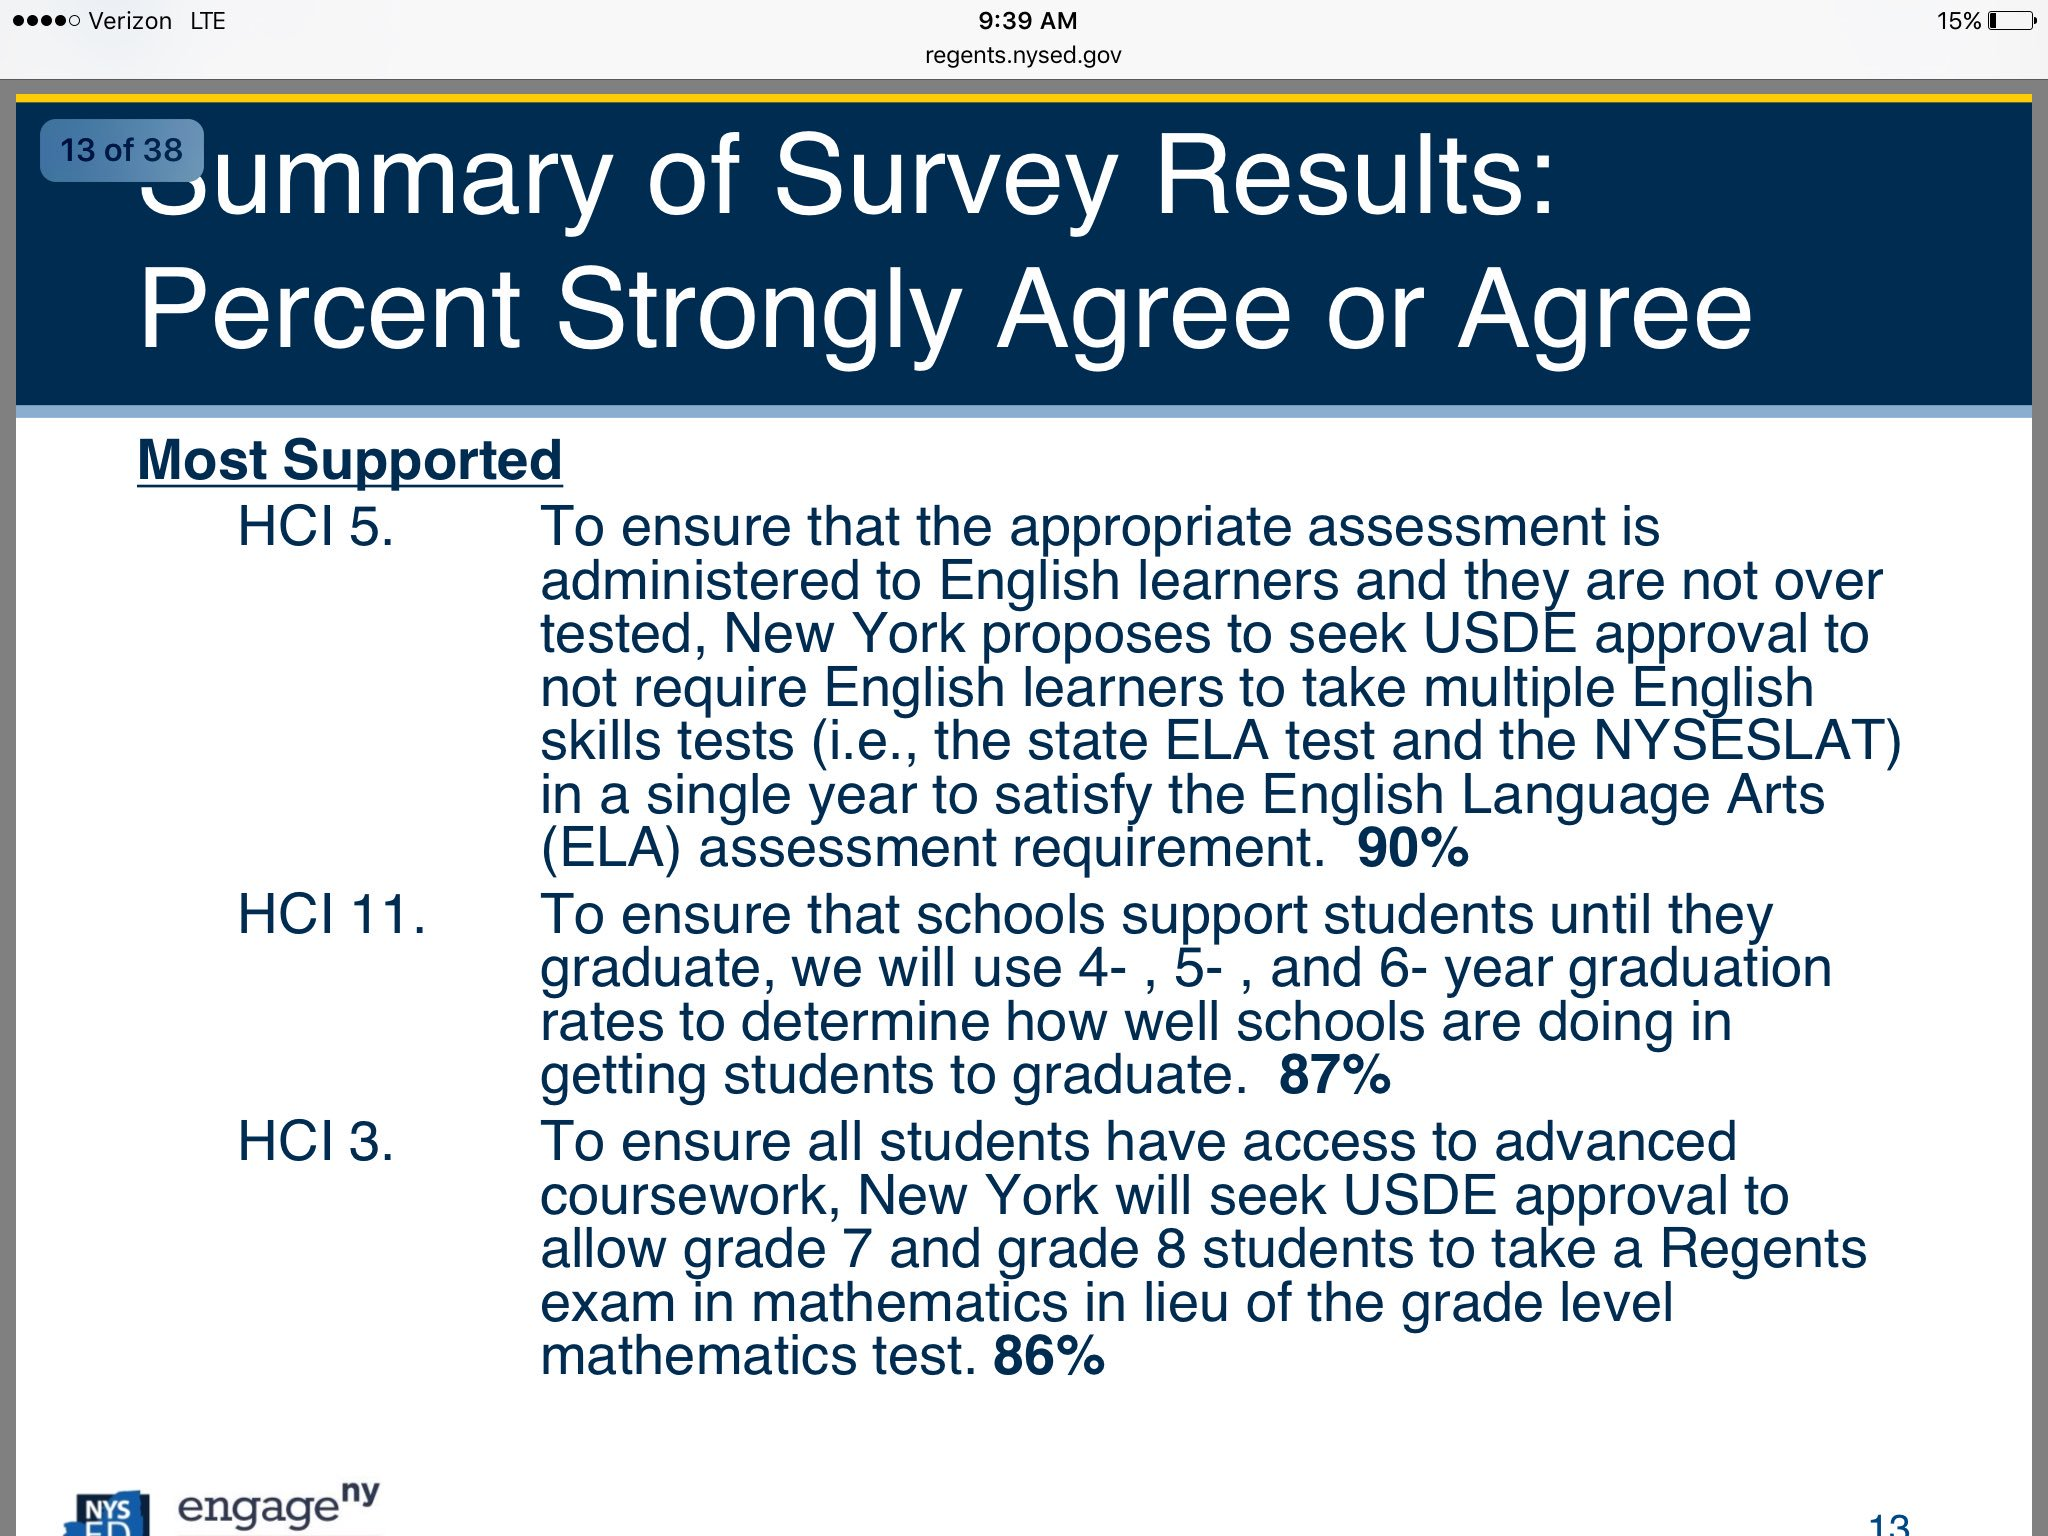 Summary of highest strongly agree ideas @NYSEDNews @NYSPTA https://t.co/m2omv7QrQc